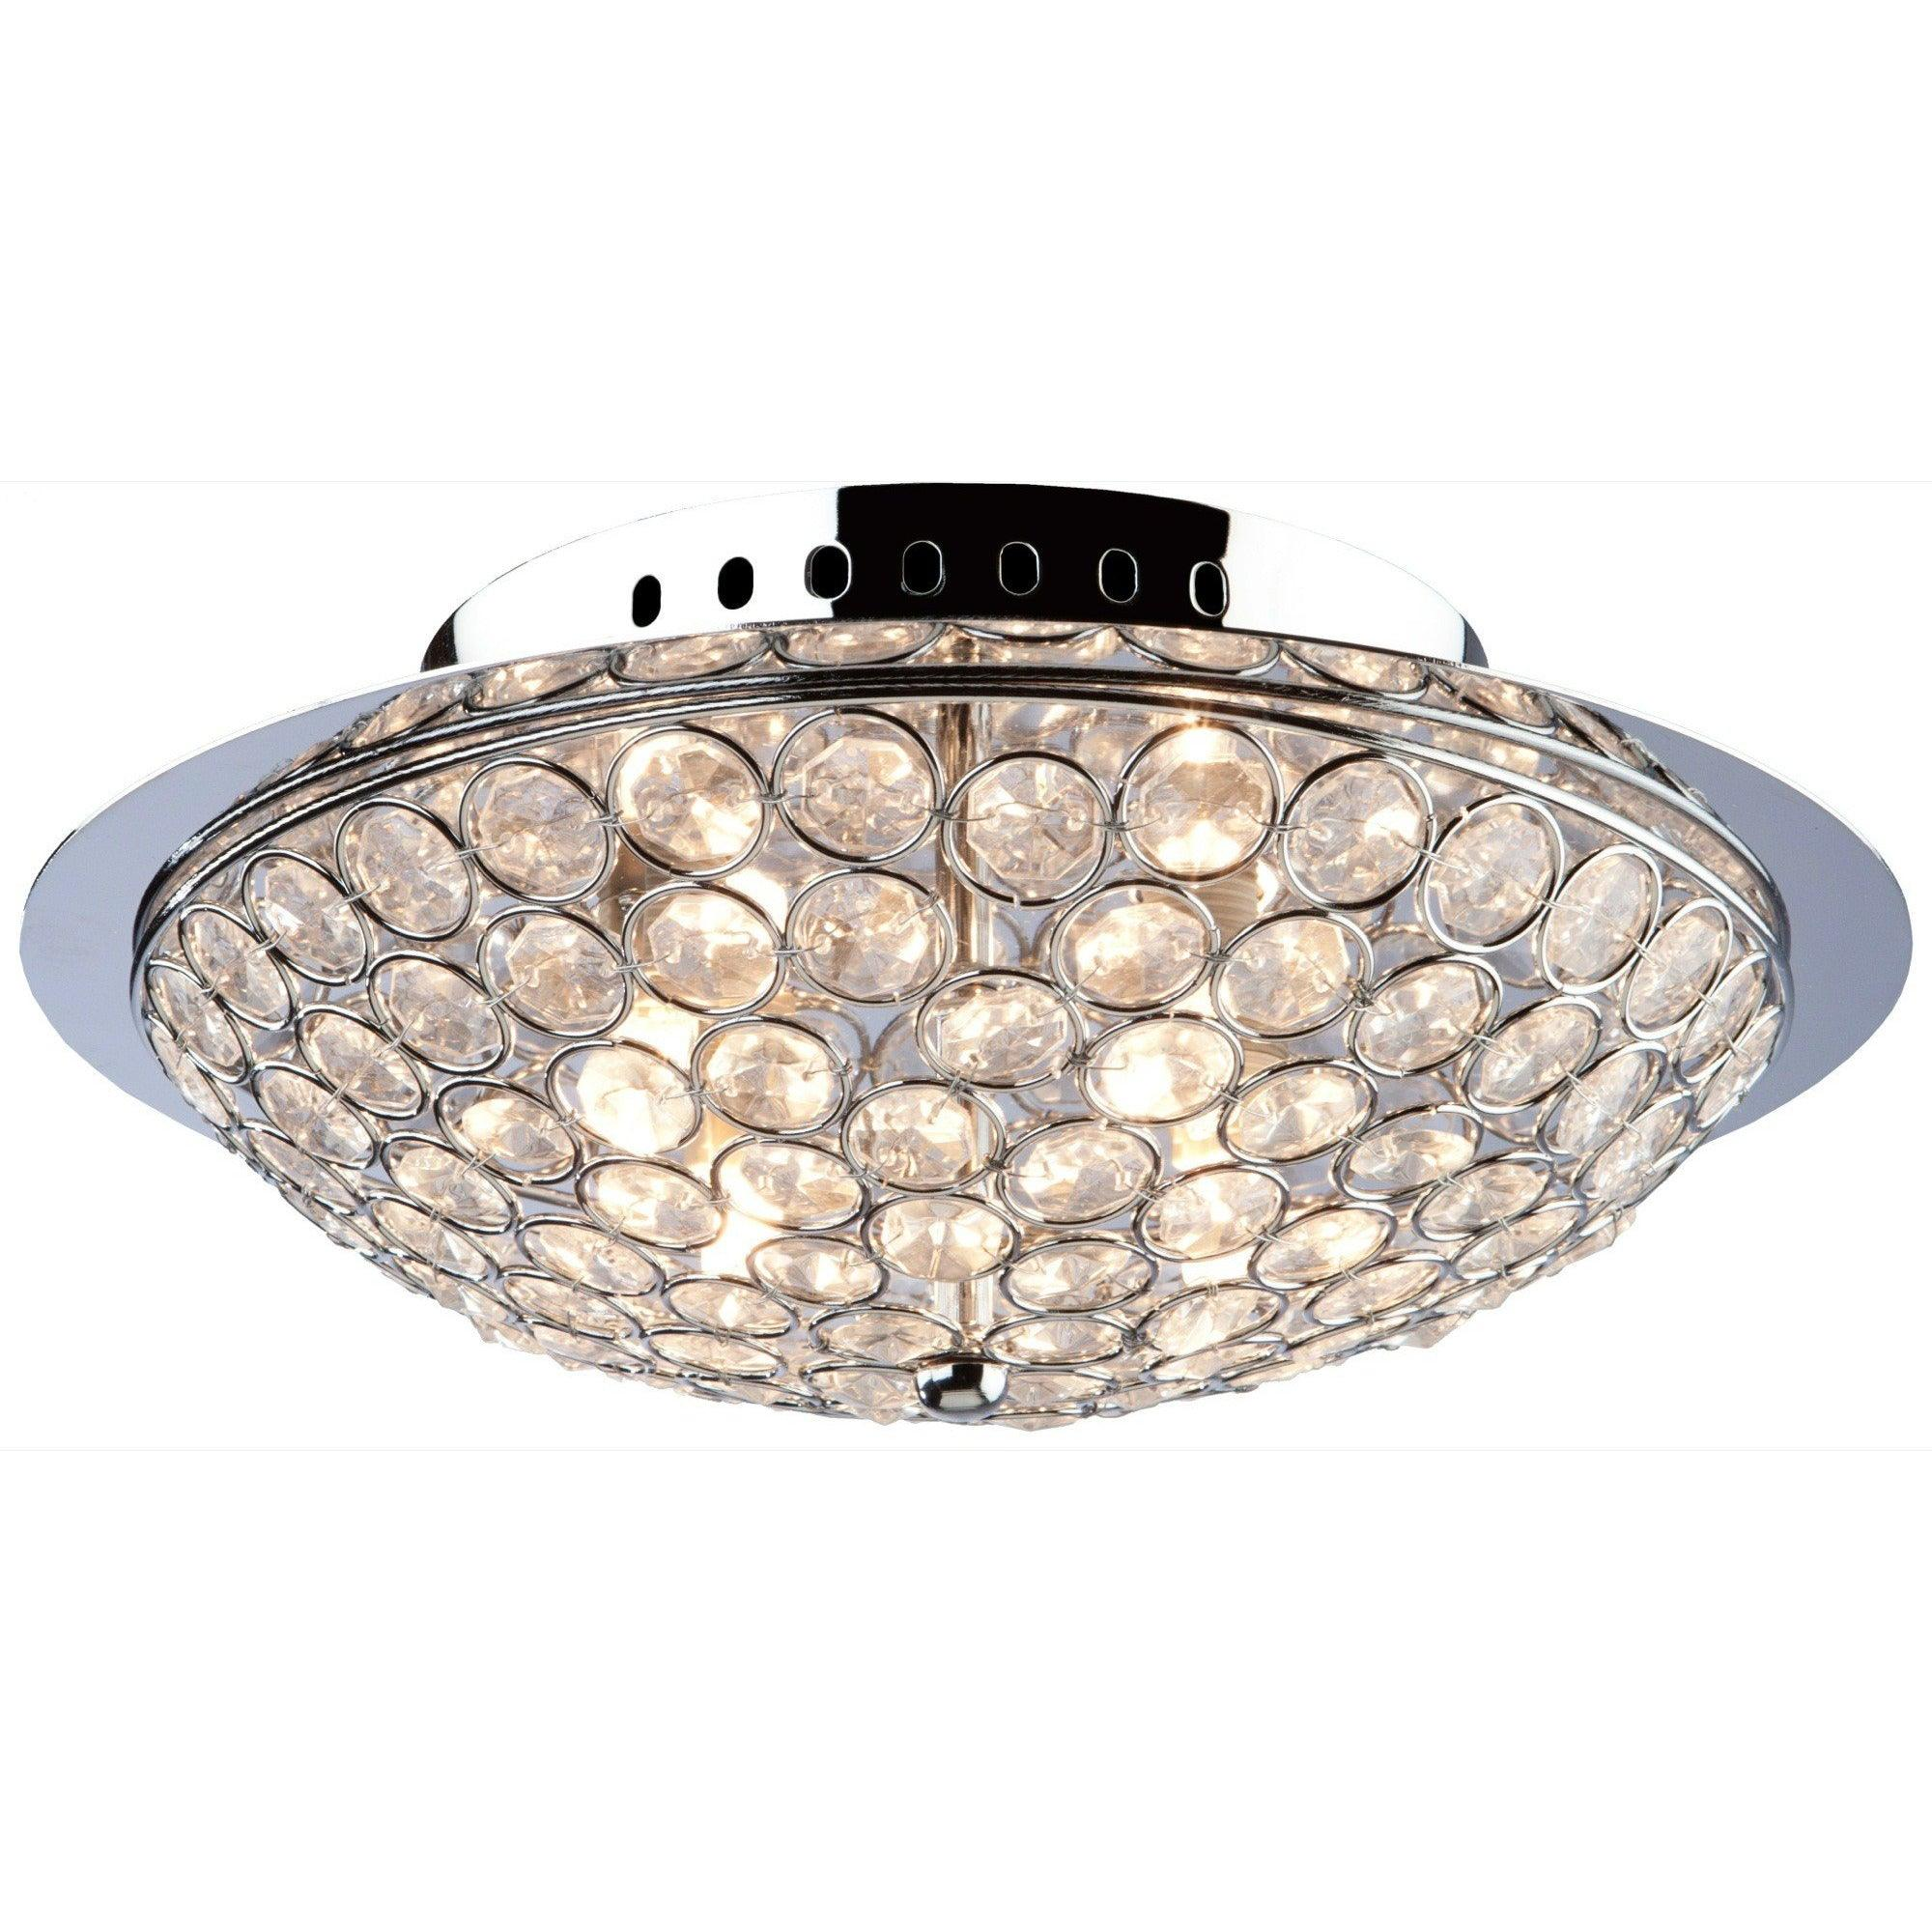 Artcraft Lighting - AC10101 - Four Light Flush Mount - Gage Park - Chrome